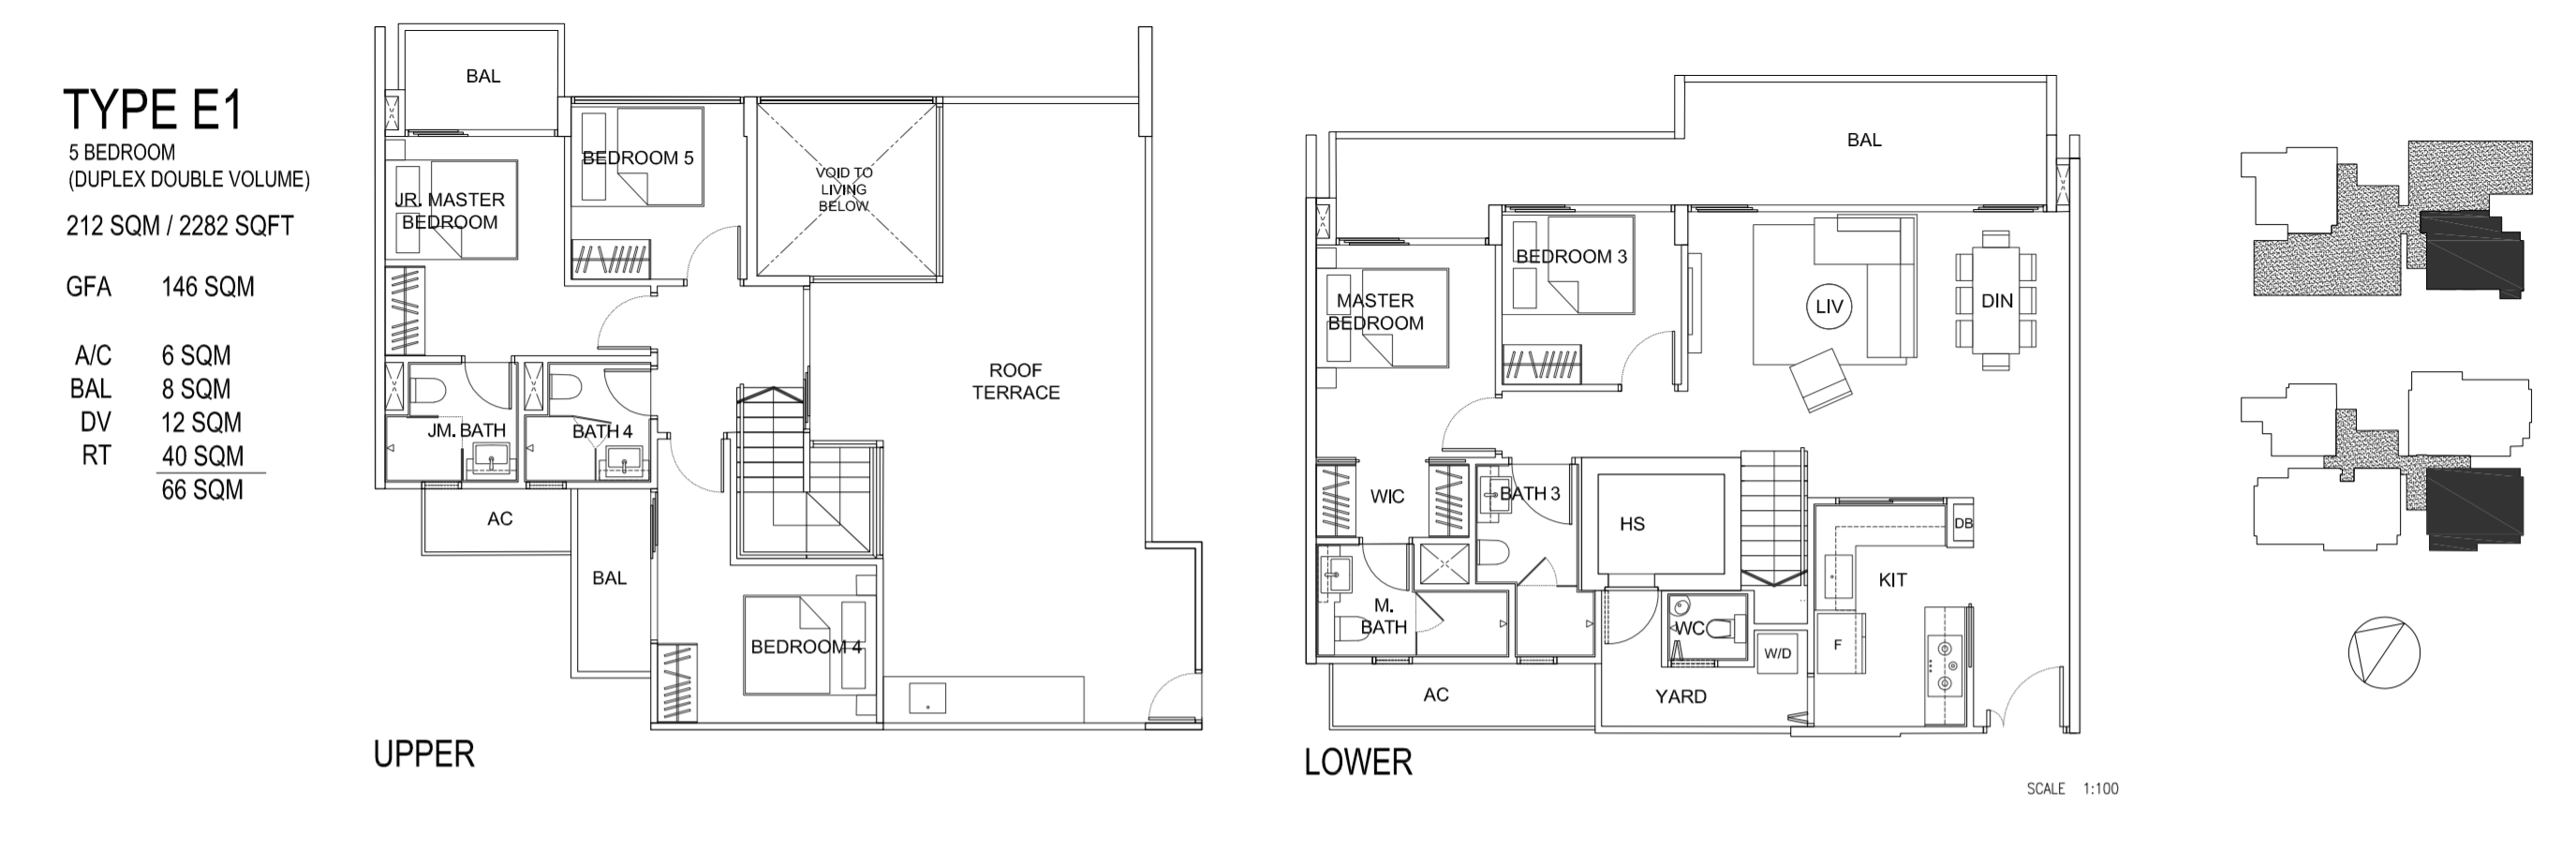 uptown-at-farrer-floor-plan-5-bedroom-e1